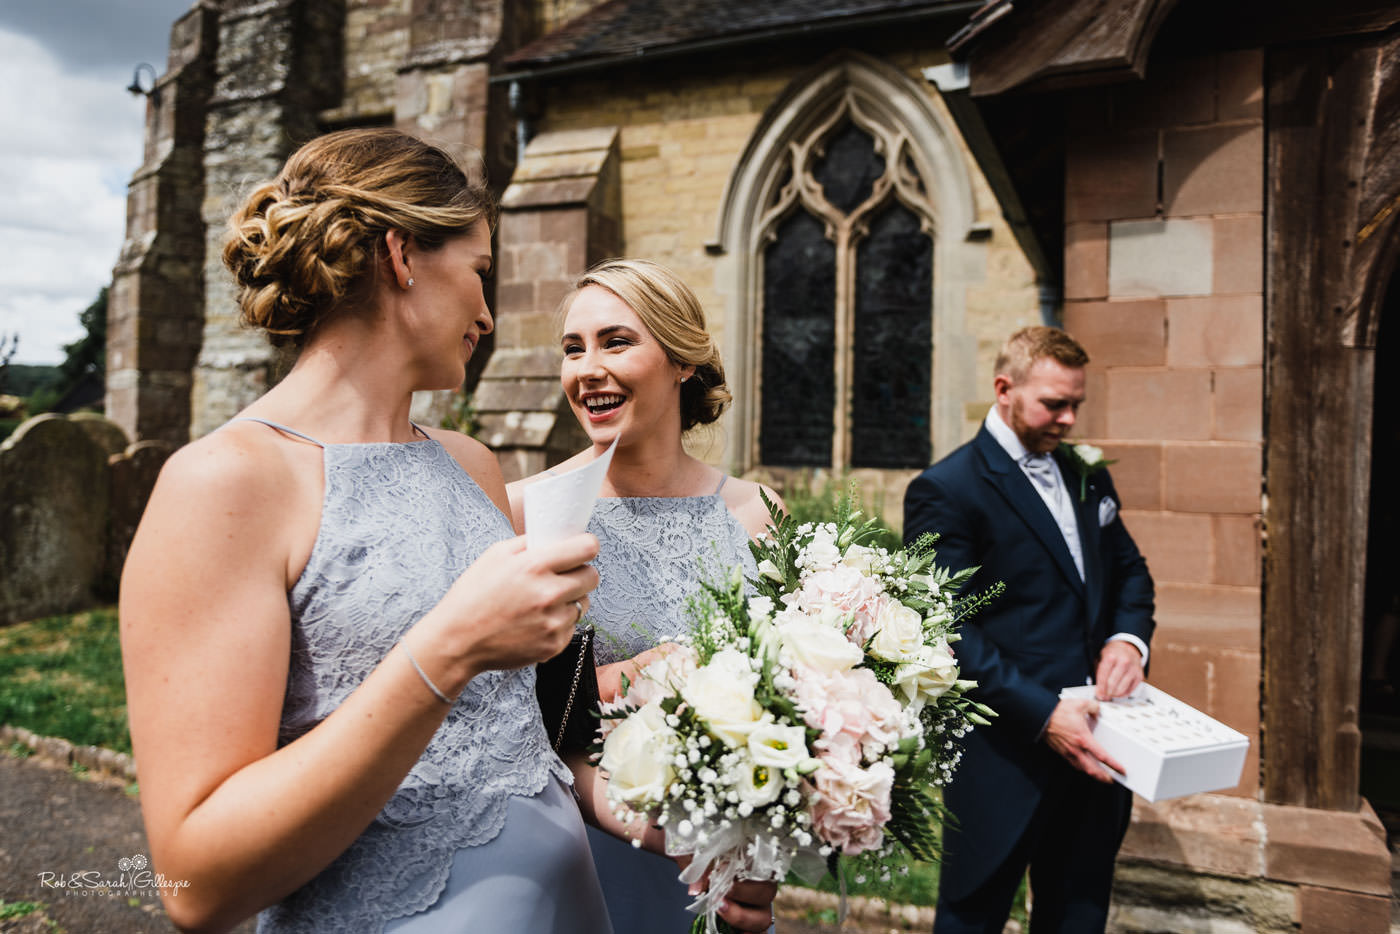 Bridesmaids chat as they wait for bride and groom to leave church